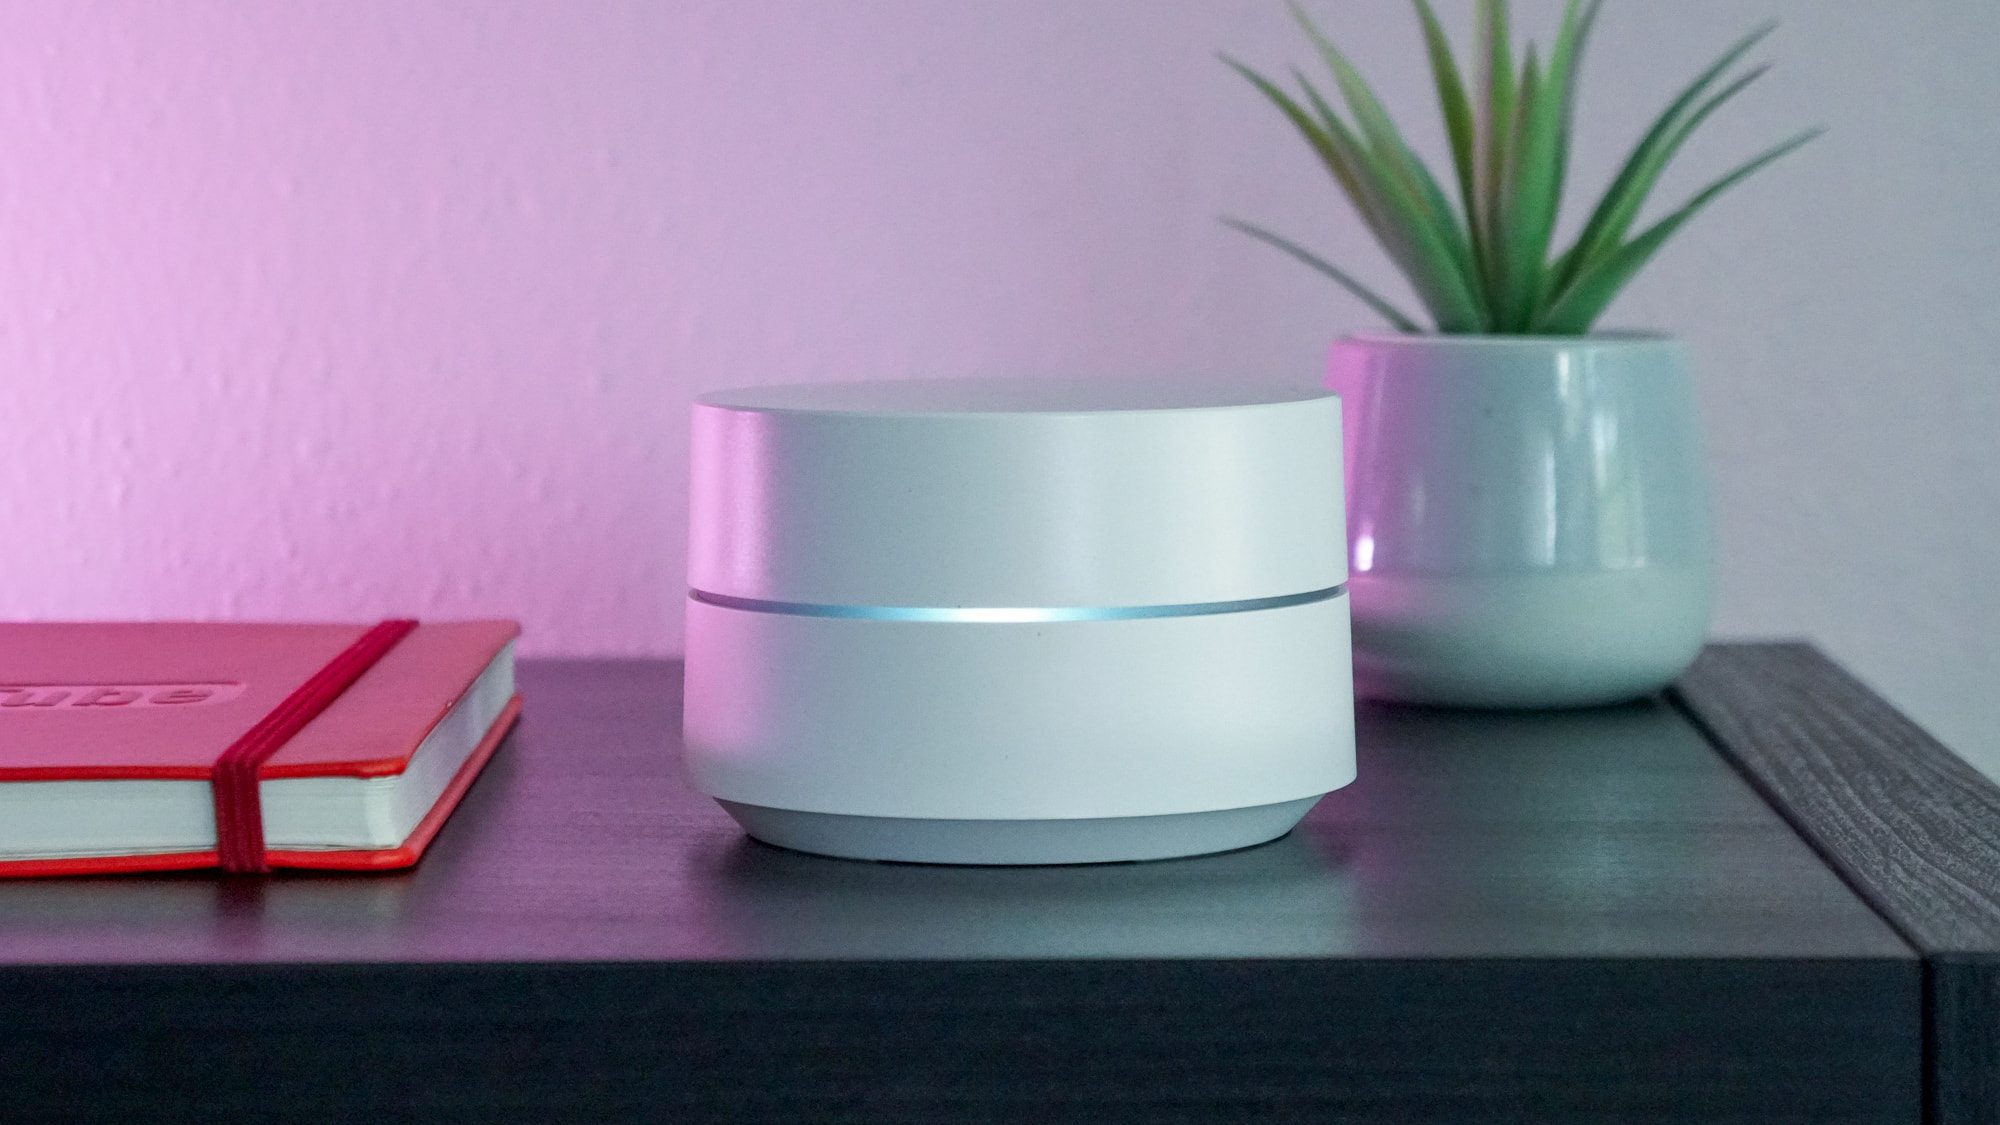 Google Wi-Fi 2 likely at fall hardware event with Wi-Fi 6